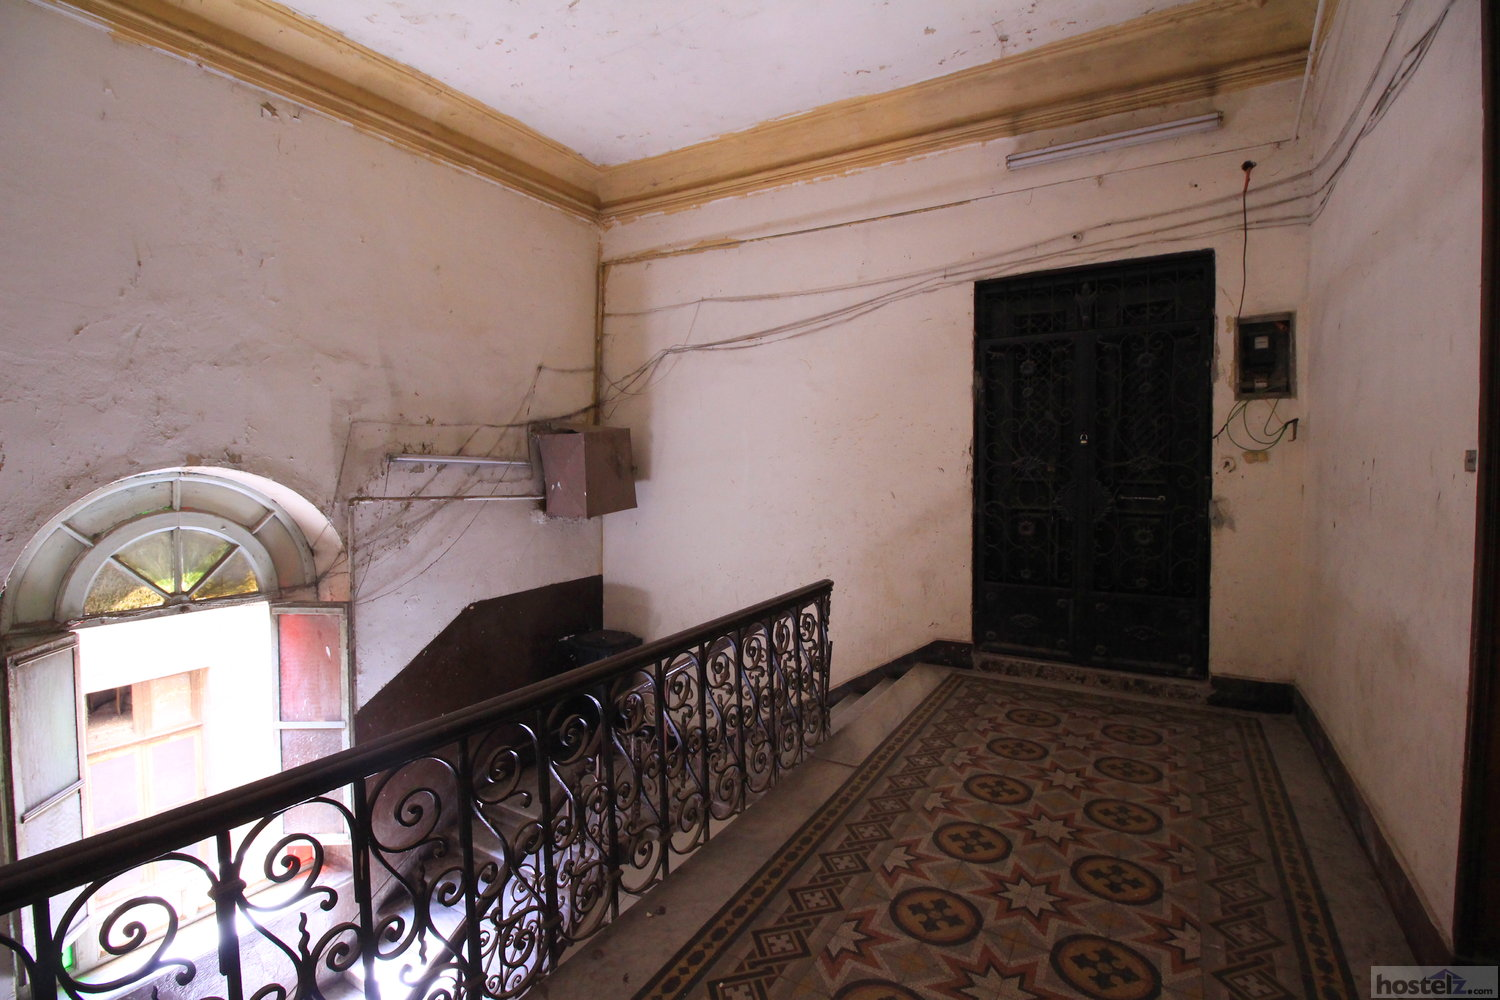 The top floor entry.